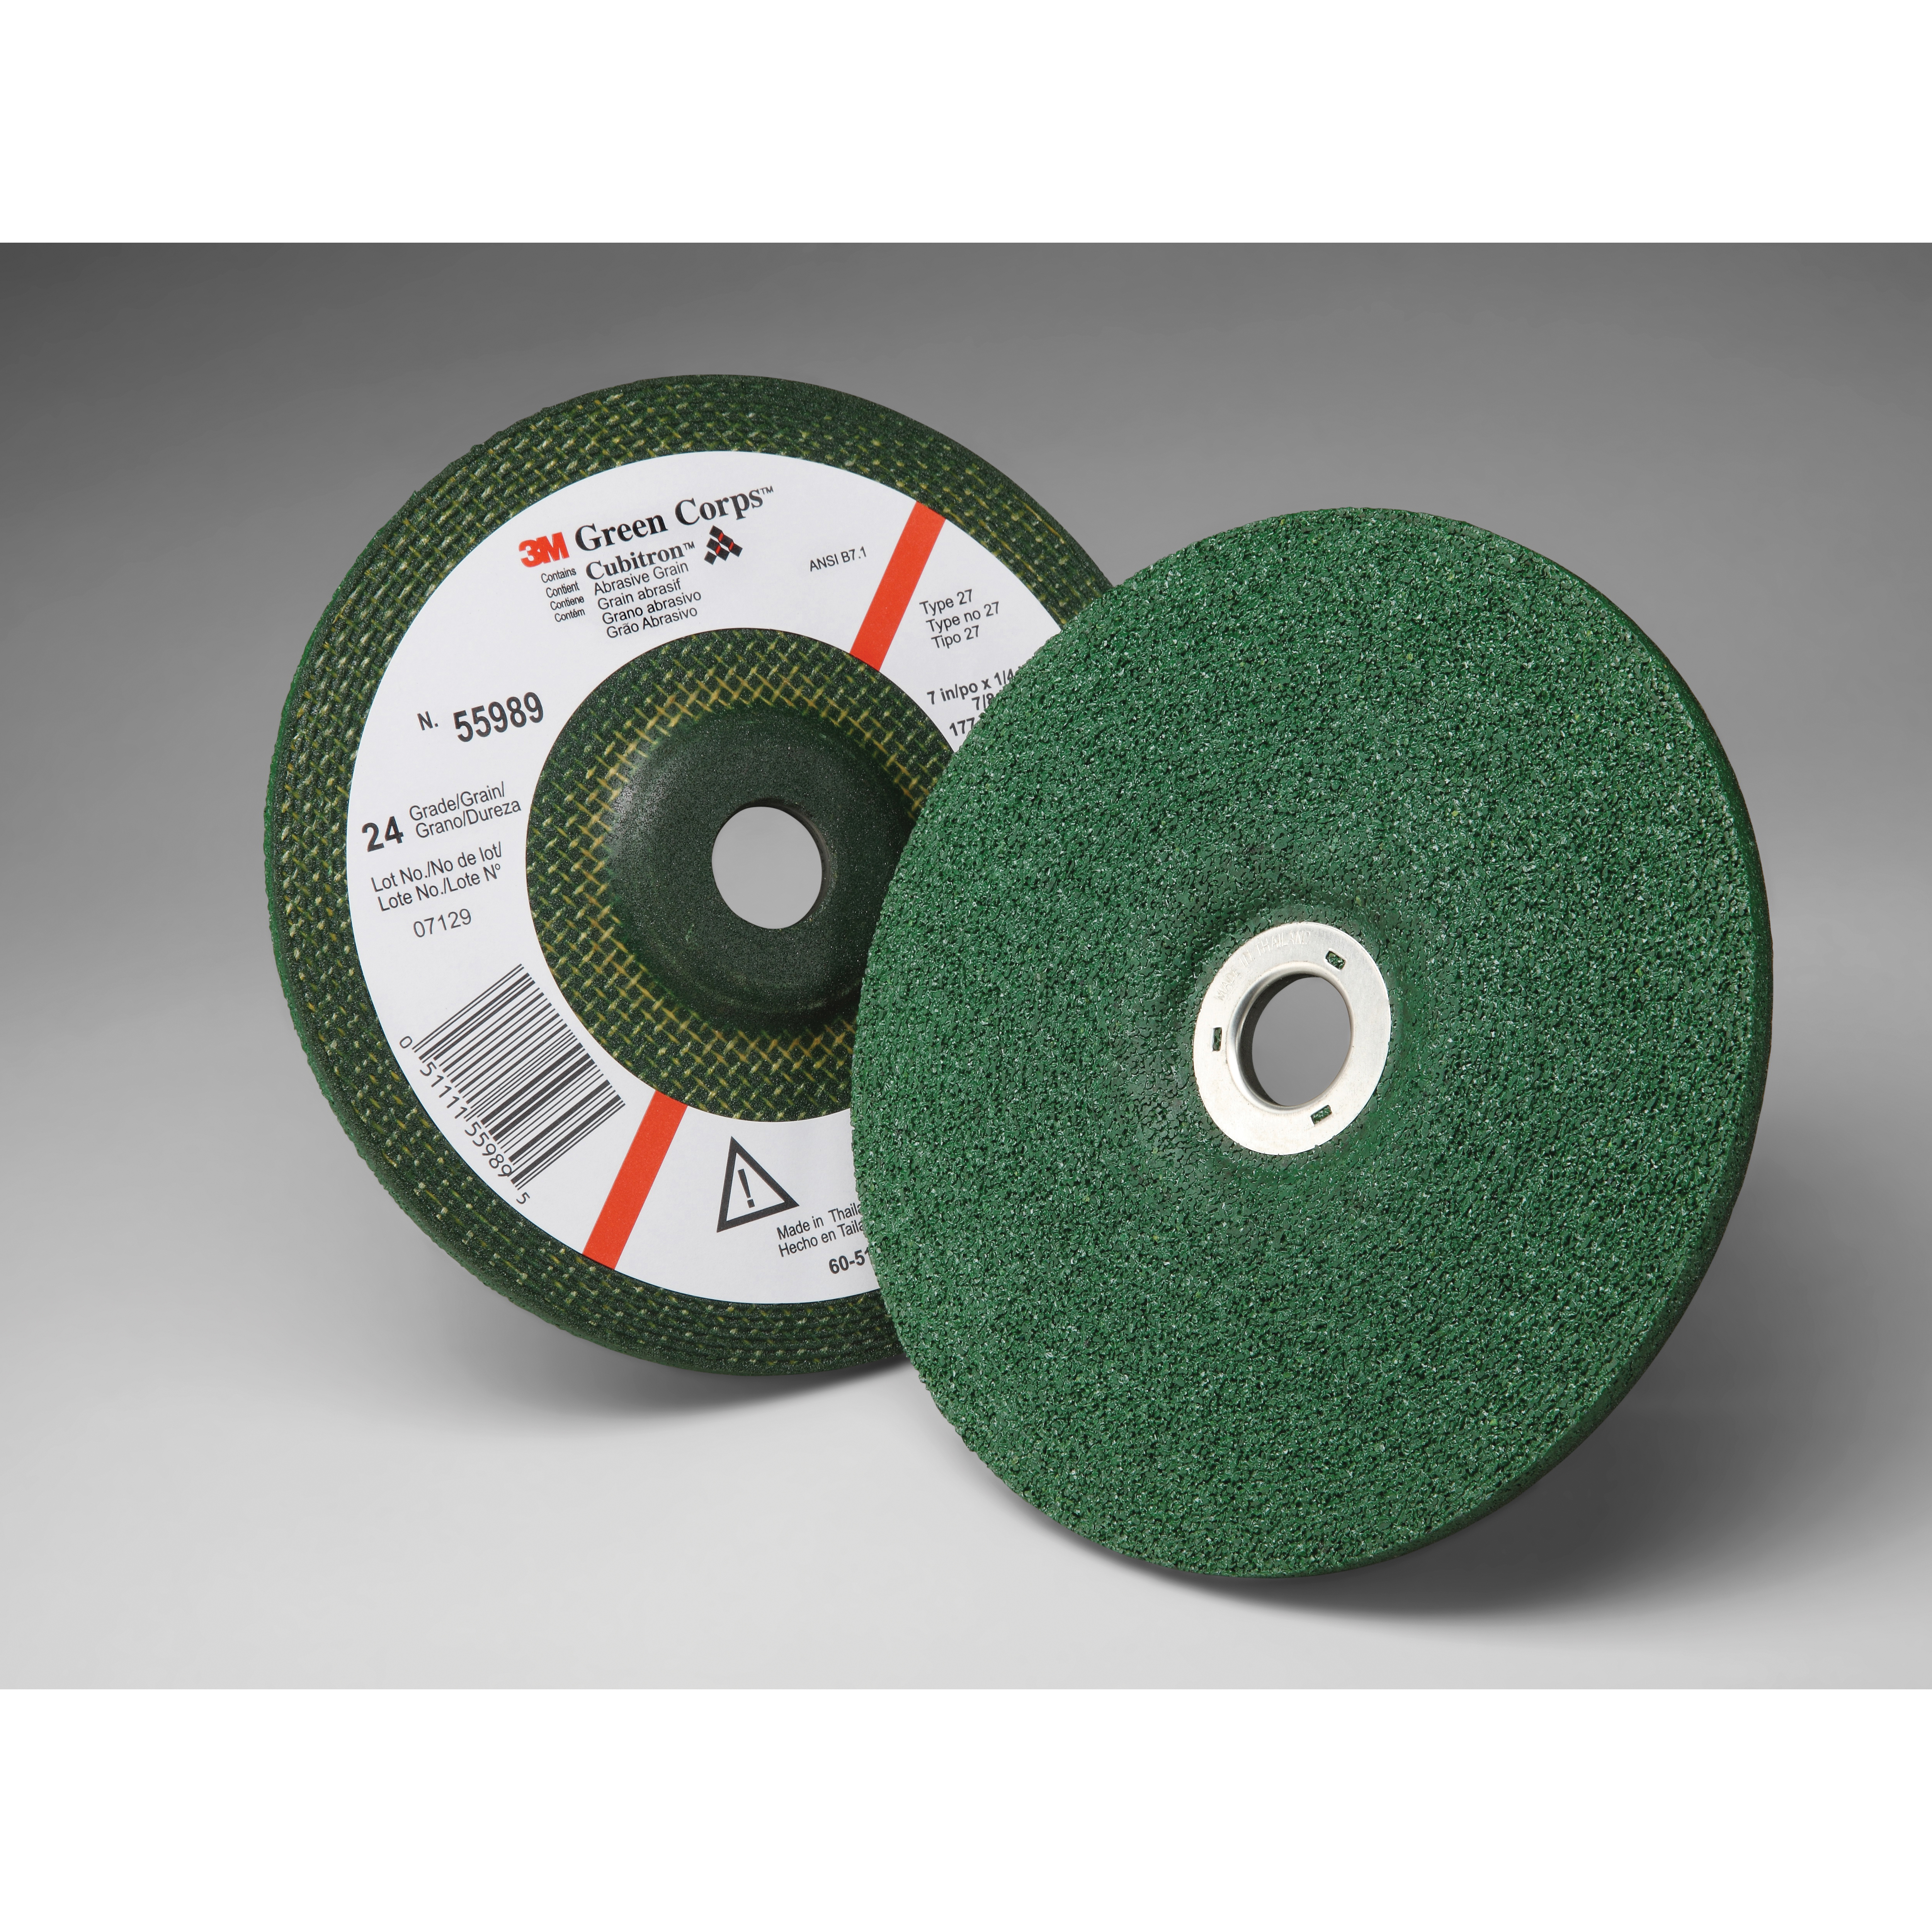 3M™ Green Corps™ 051111-55989 Depressed Center Wheel, 7 in Dia x 1/4 in THK, 7/8 in Center Hole, 24 Grit, Ceramic Abrasive